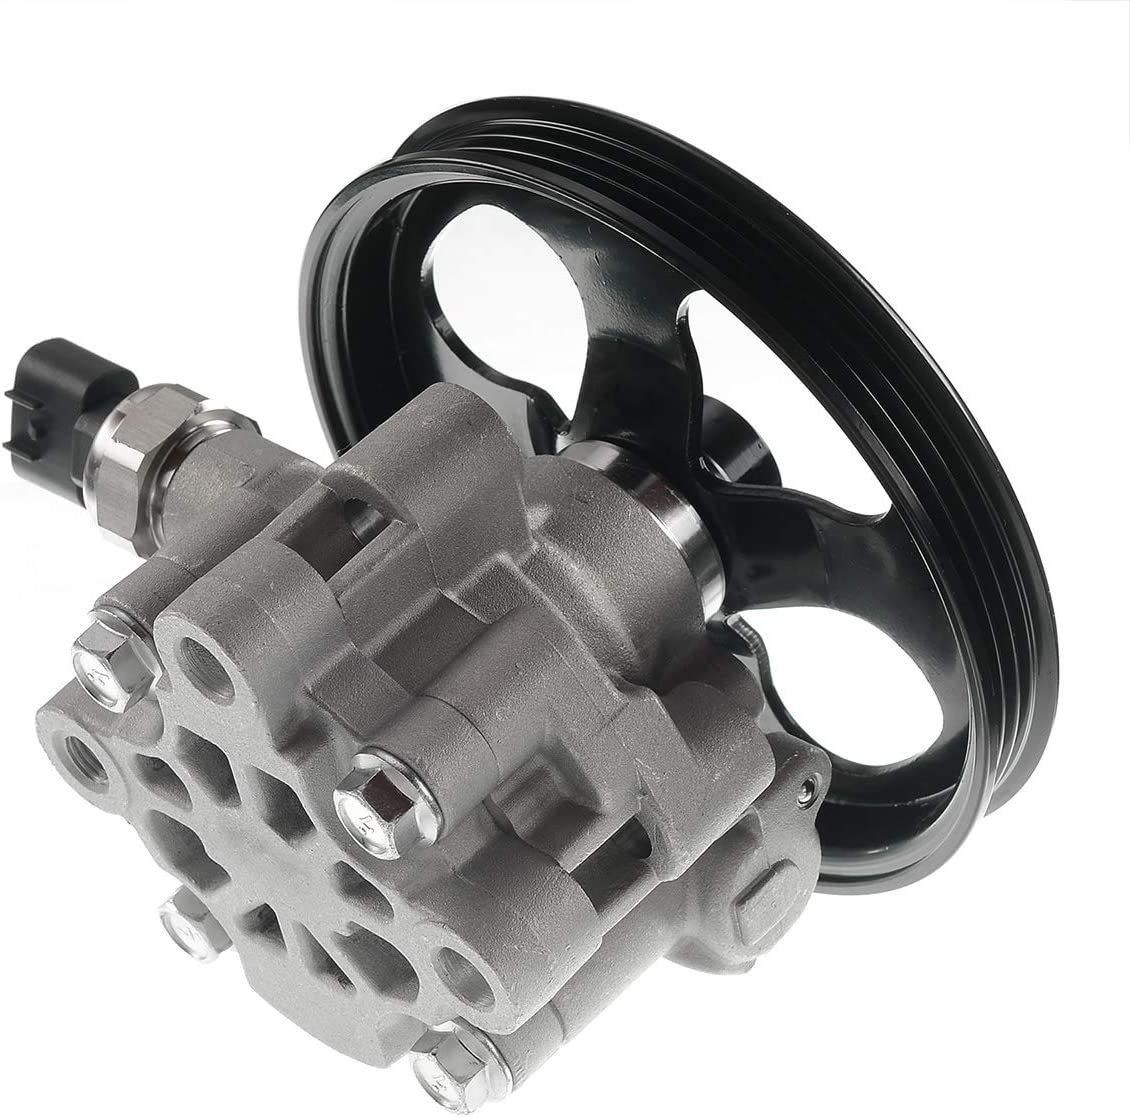 Power Steering Pump Assembly Compatible with Toyota Echo 2000-2005 Scion xA xB 2004-2006 I4 1.5L